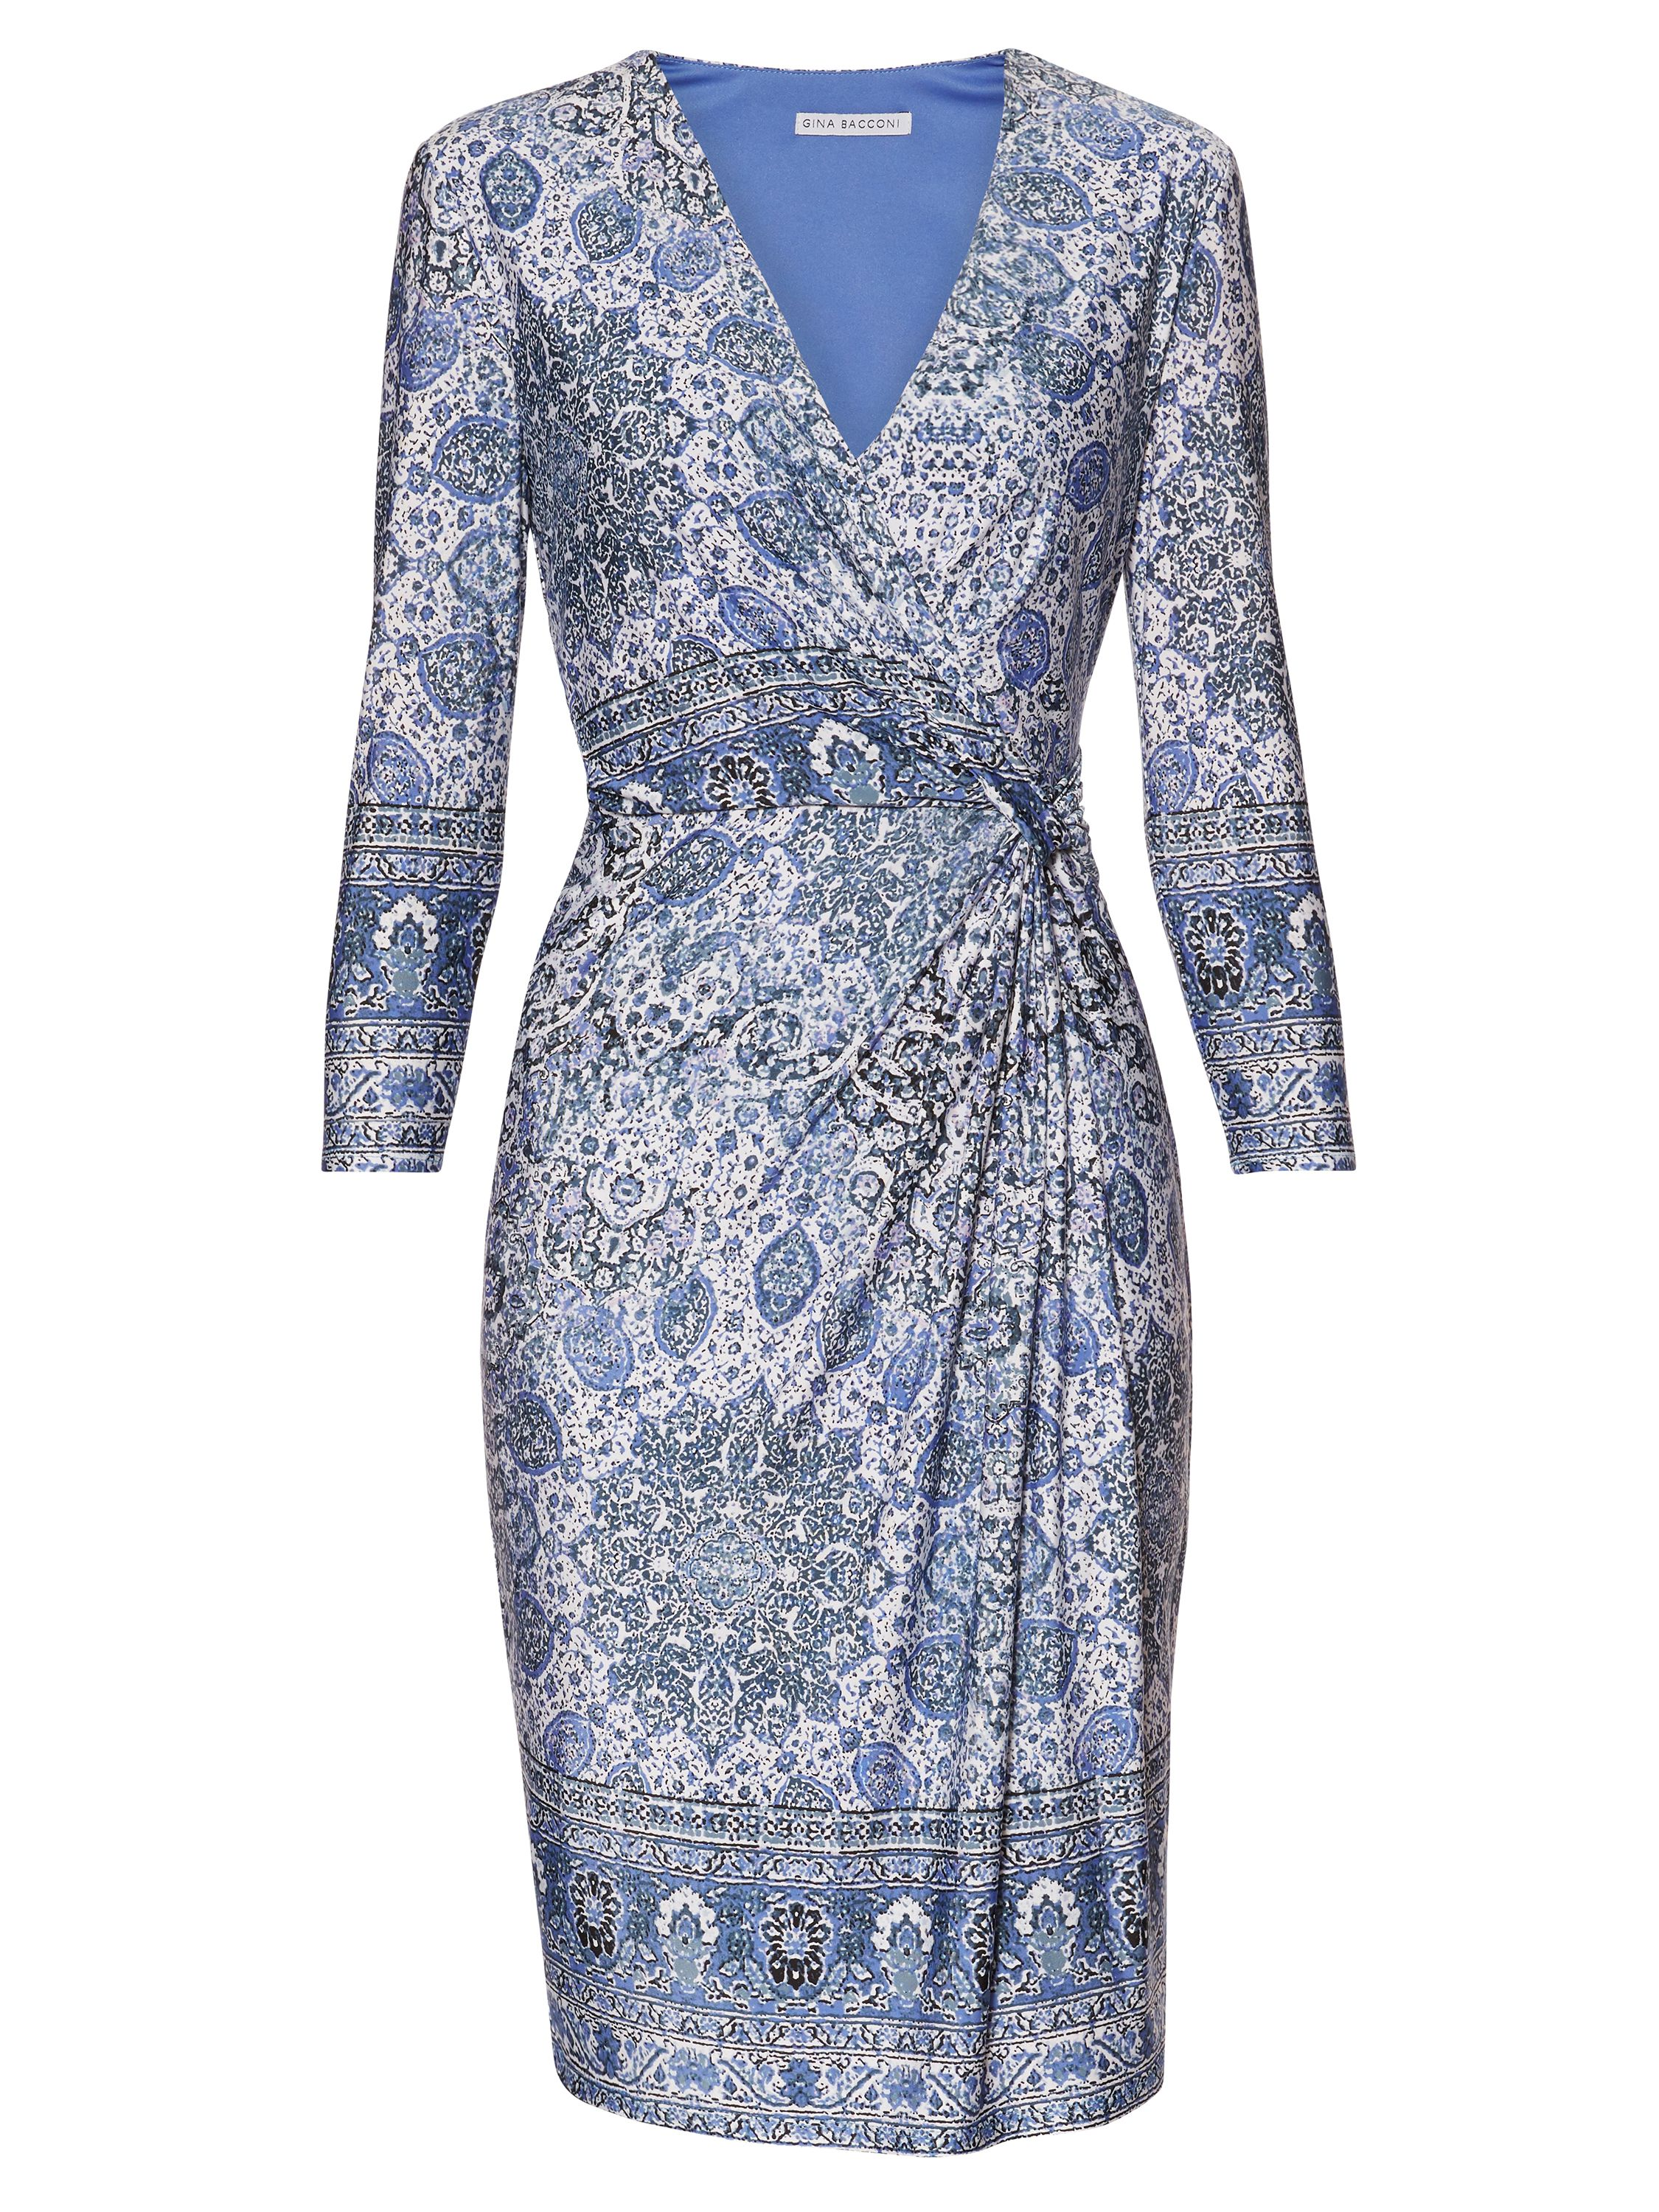 Gina Bacconi Blue Border Print Jersey Dress, Blue